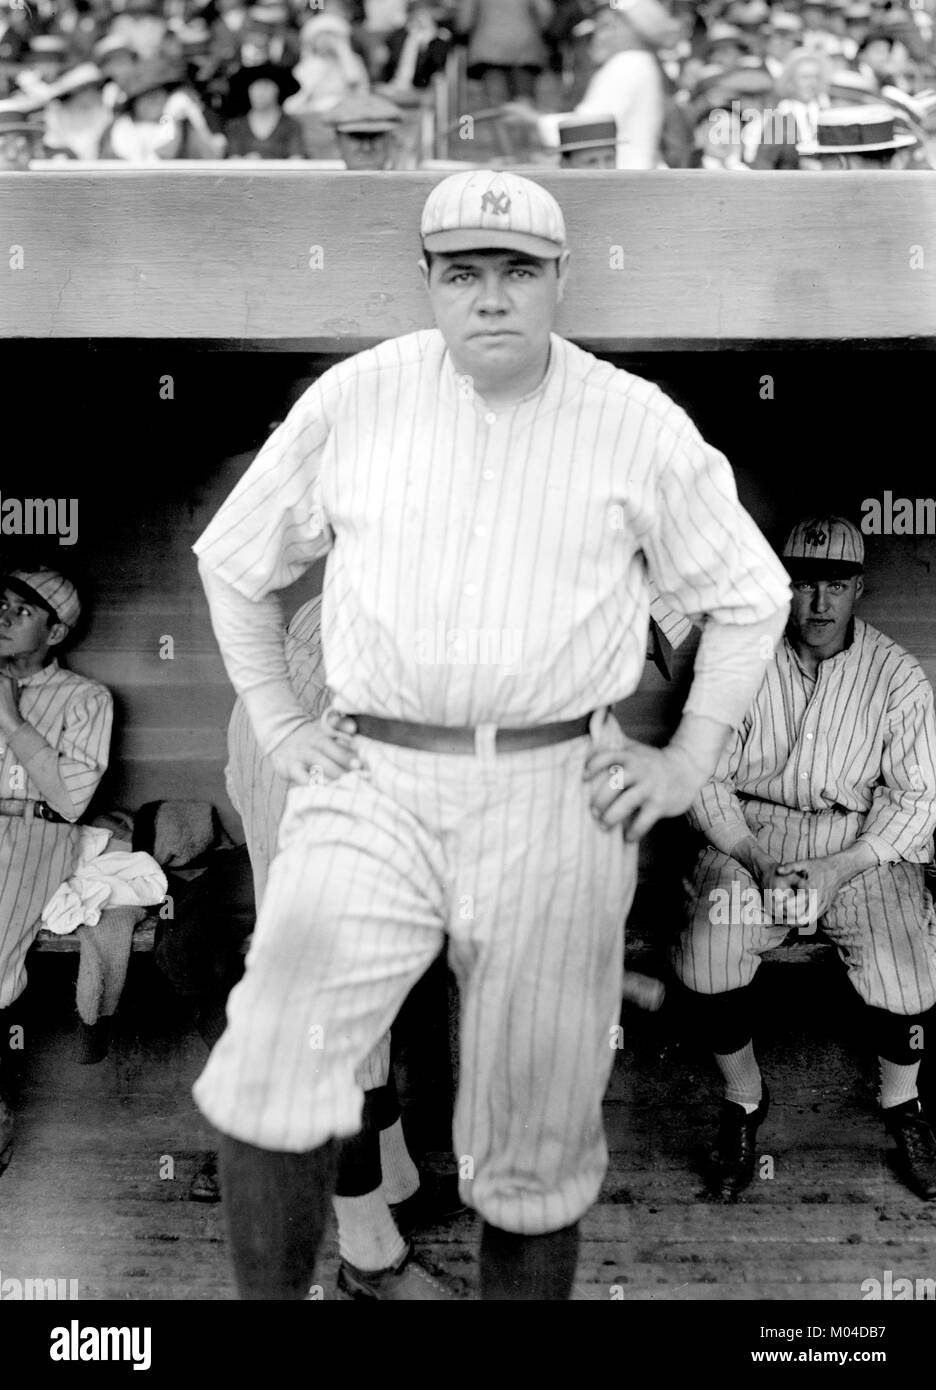 a biography of george herman ruth jr an american baseball player Babe ruth's biography  george herman ruth jr was born on february 6, 1895 in the house of his grandparents in baltimore, md  baseball would be nowhere near .